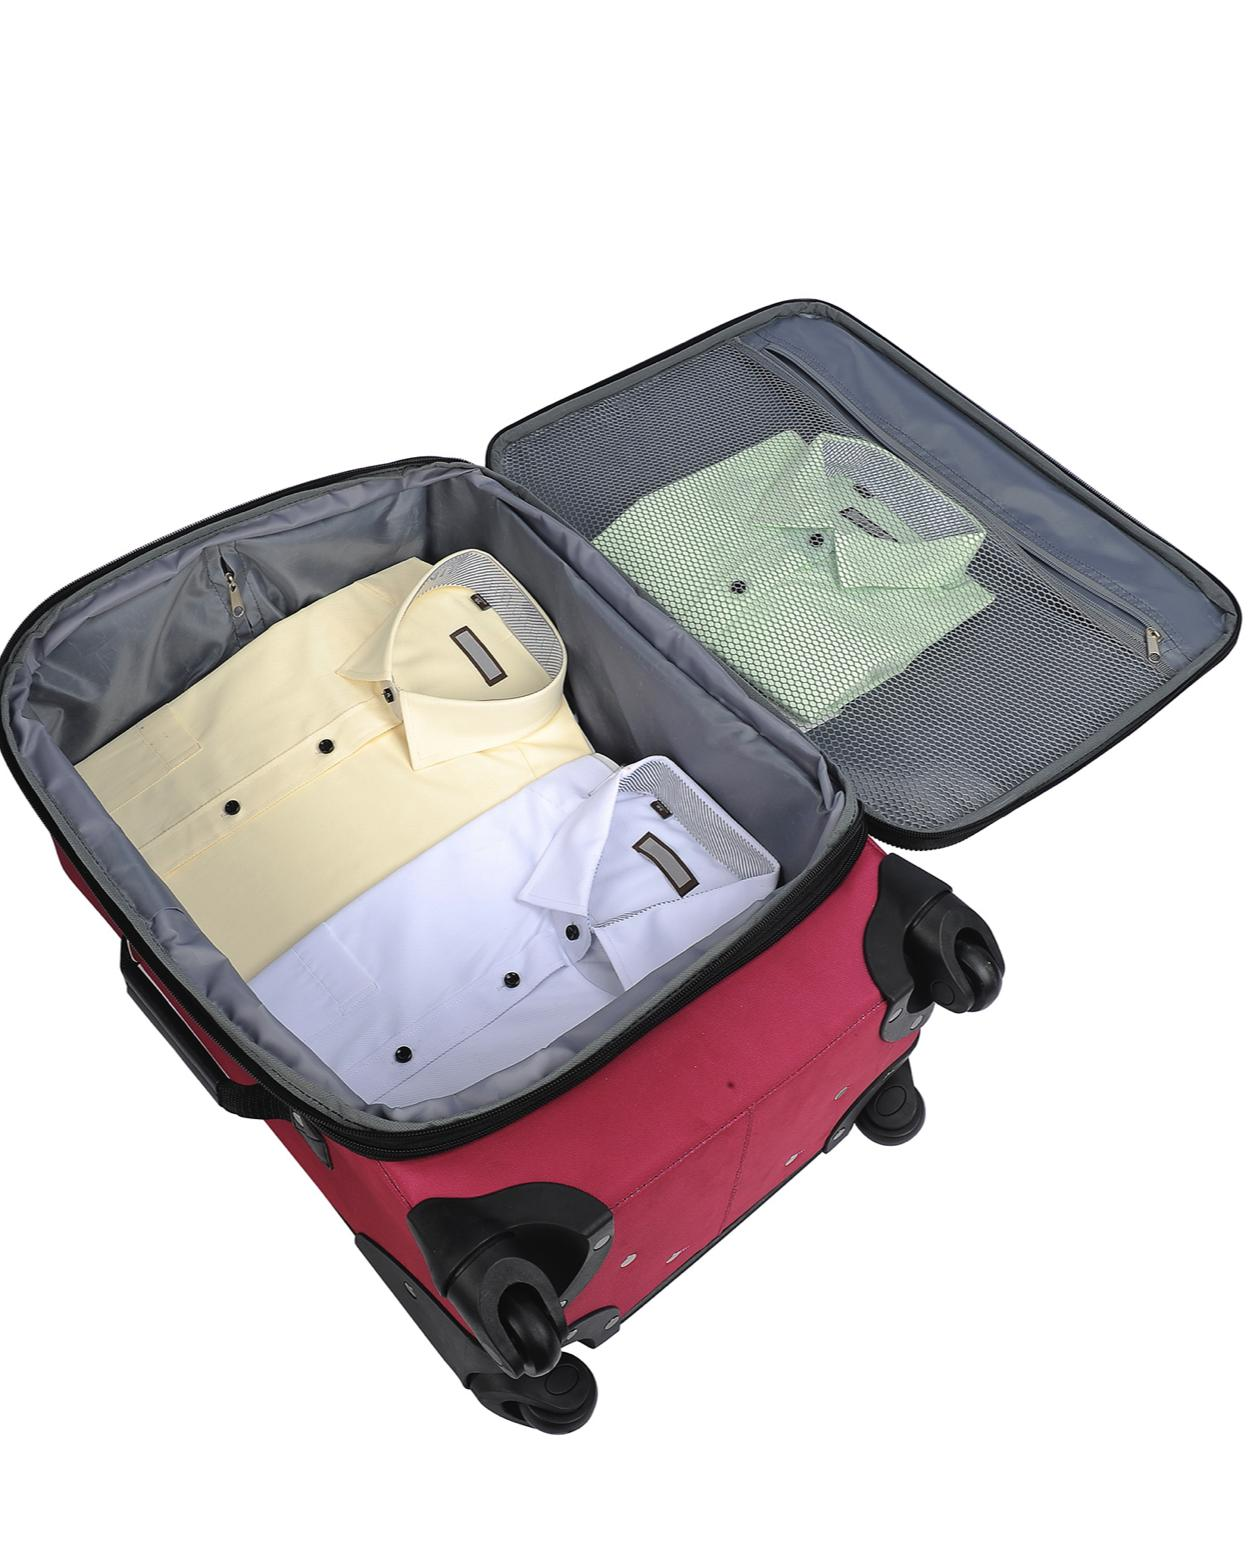 Protege 2-Piece Expandable Spinner Travel Luggage